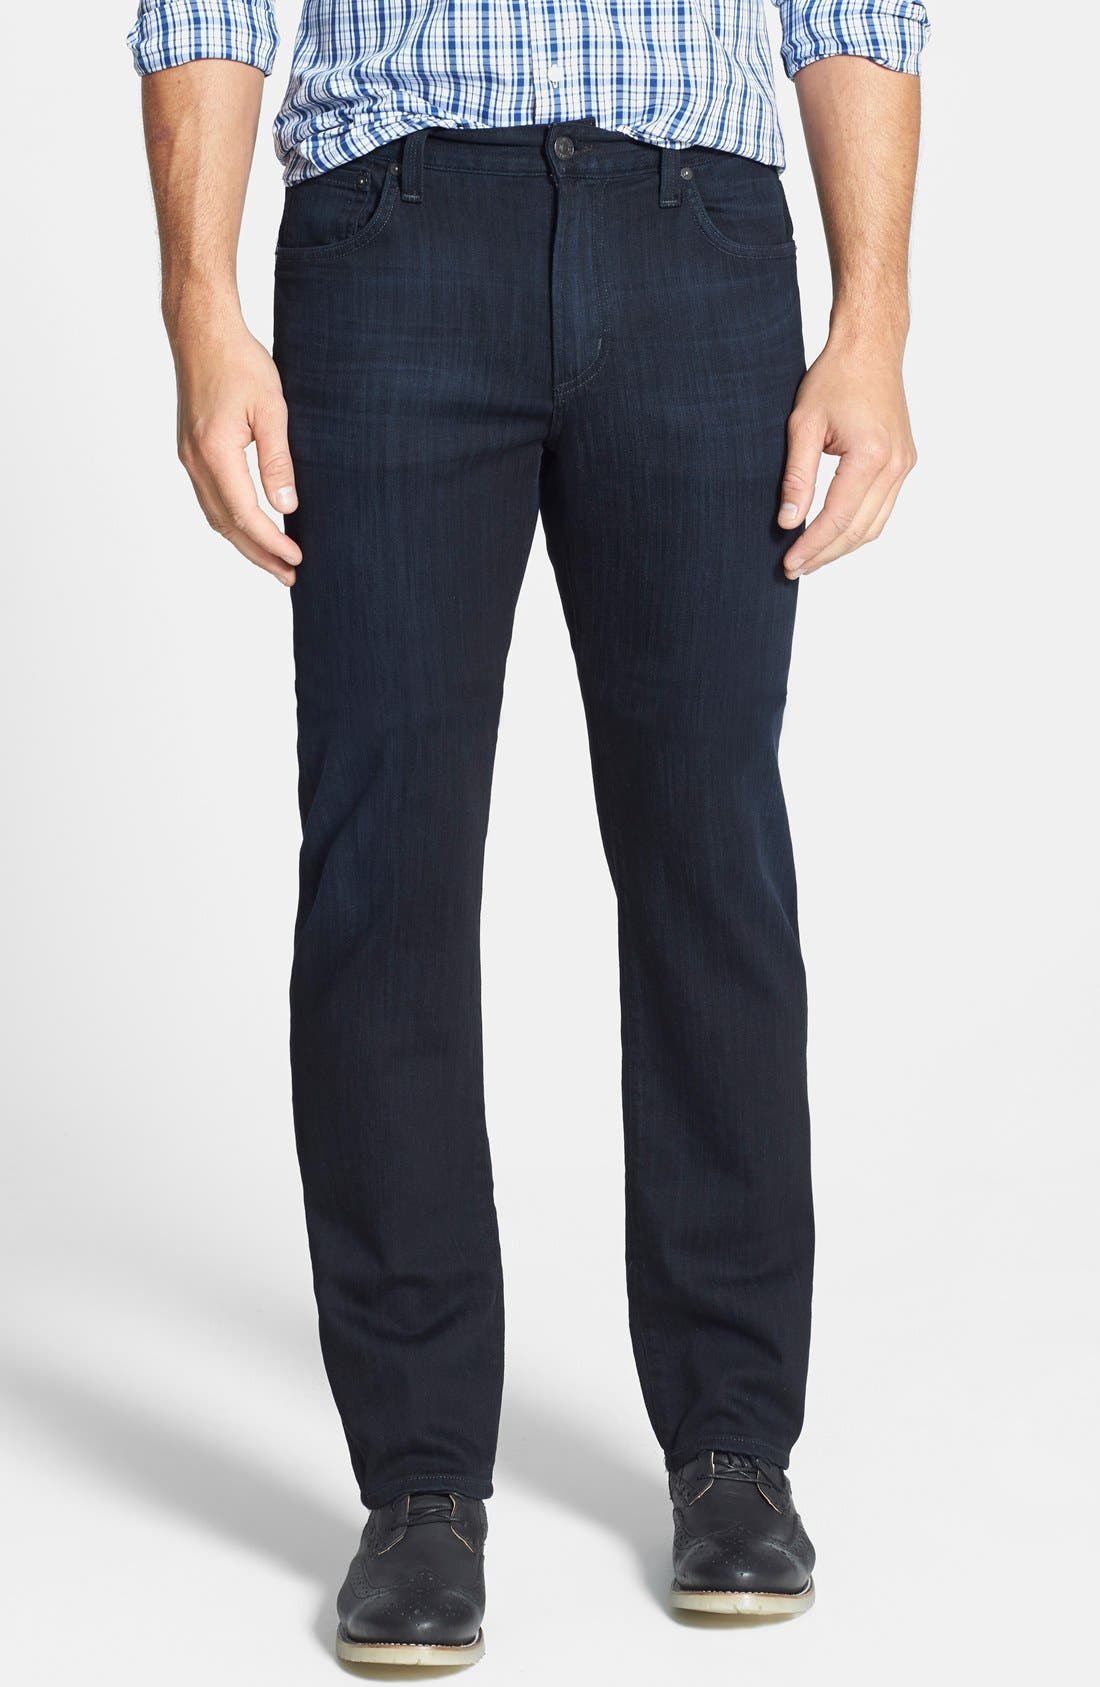 Sid Classic Straight Leg Jeans,                             Main thumbnail 1, color,                             REESE WASH